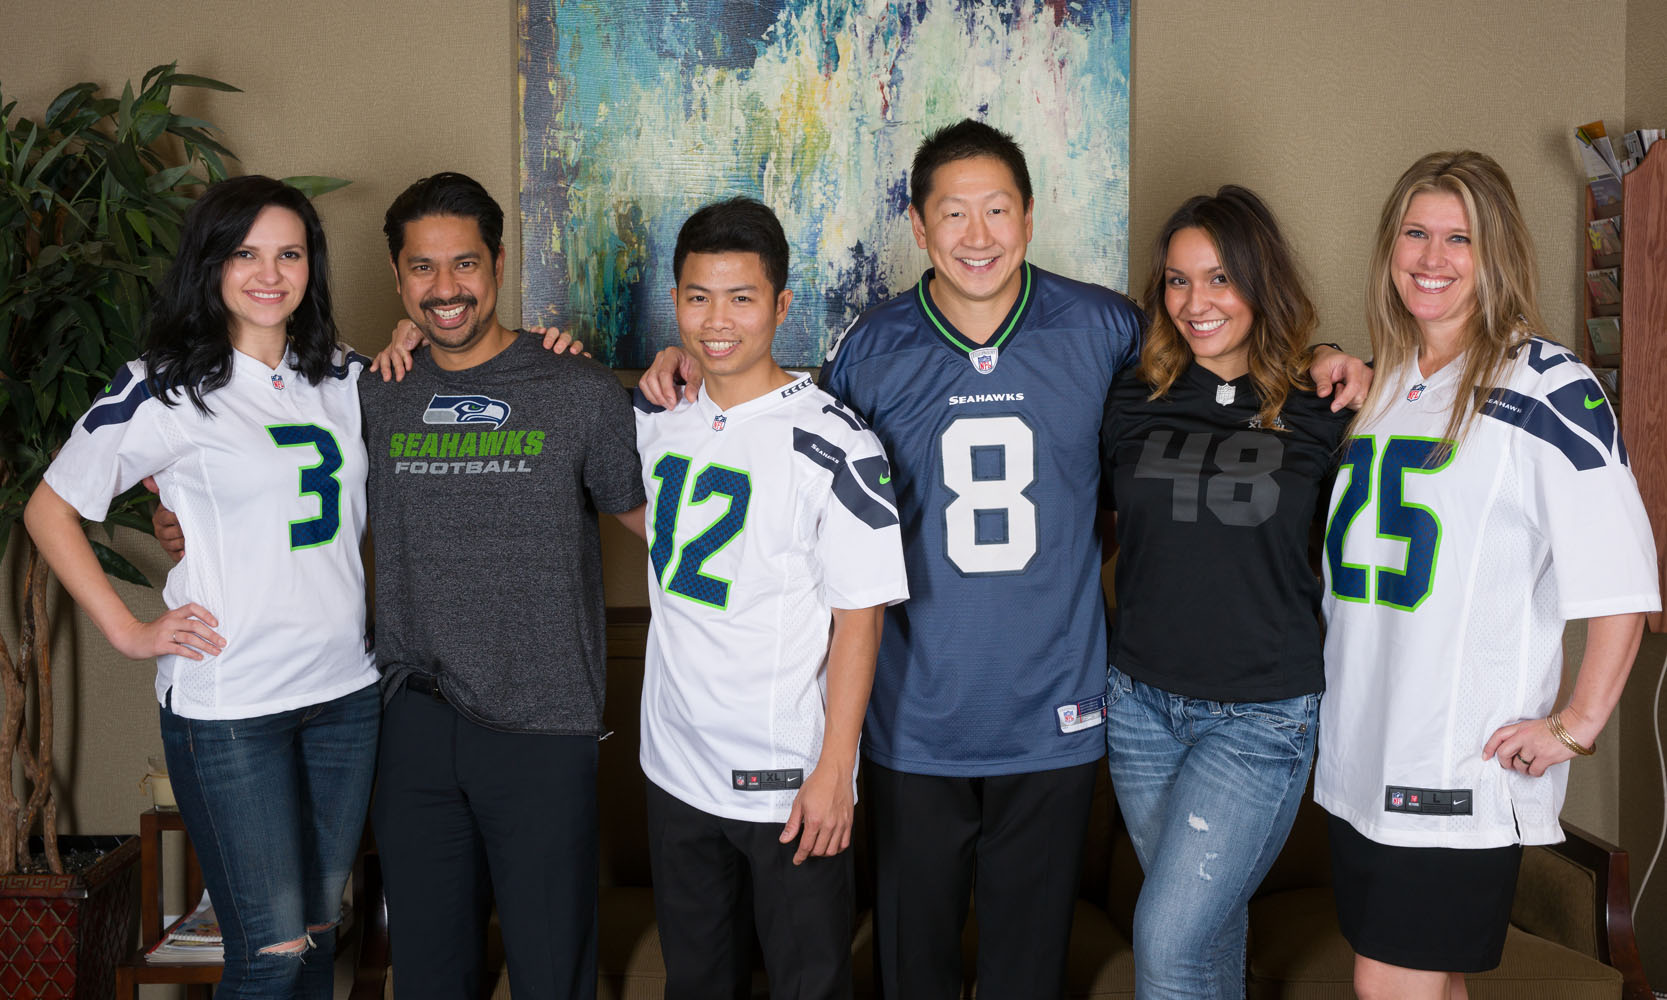 Seattle Aesthetic Facial Plastic Surgery Team Go Seahawks